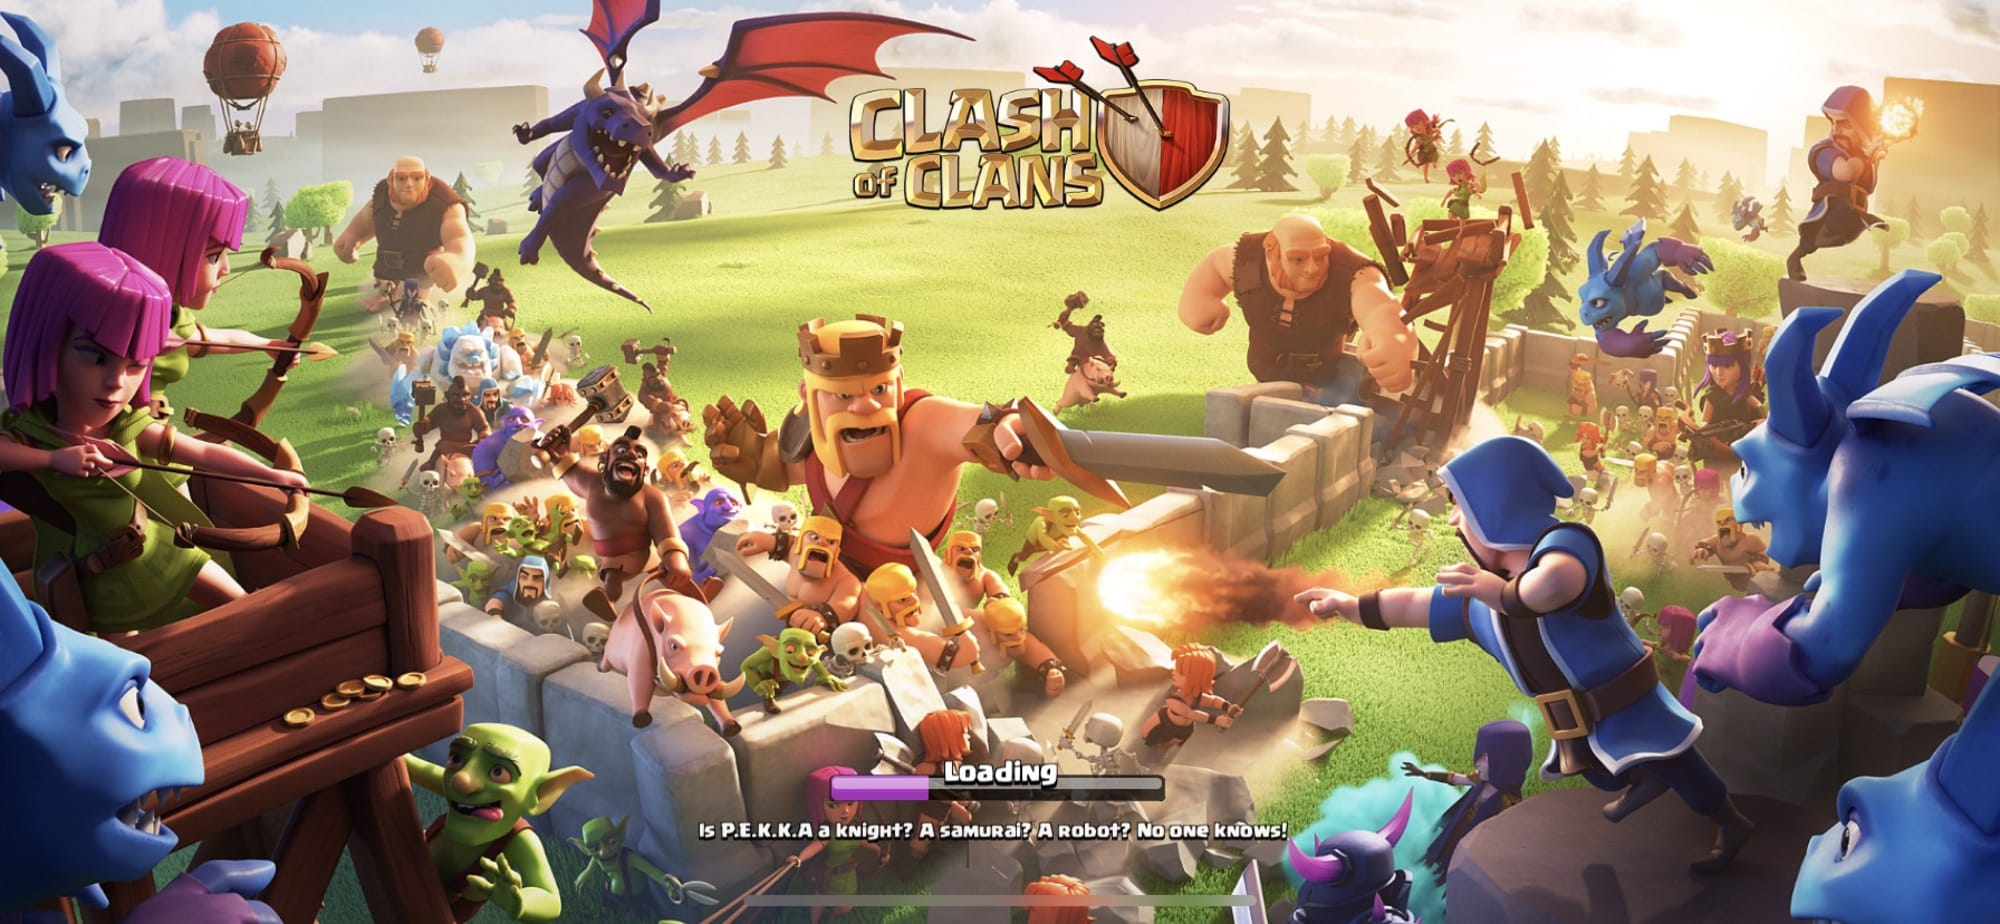 Clash of Clans Autumn 2020 update live: What's new?